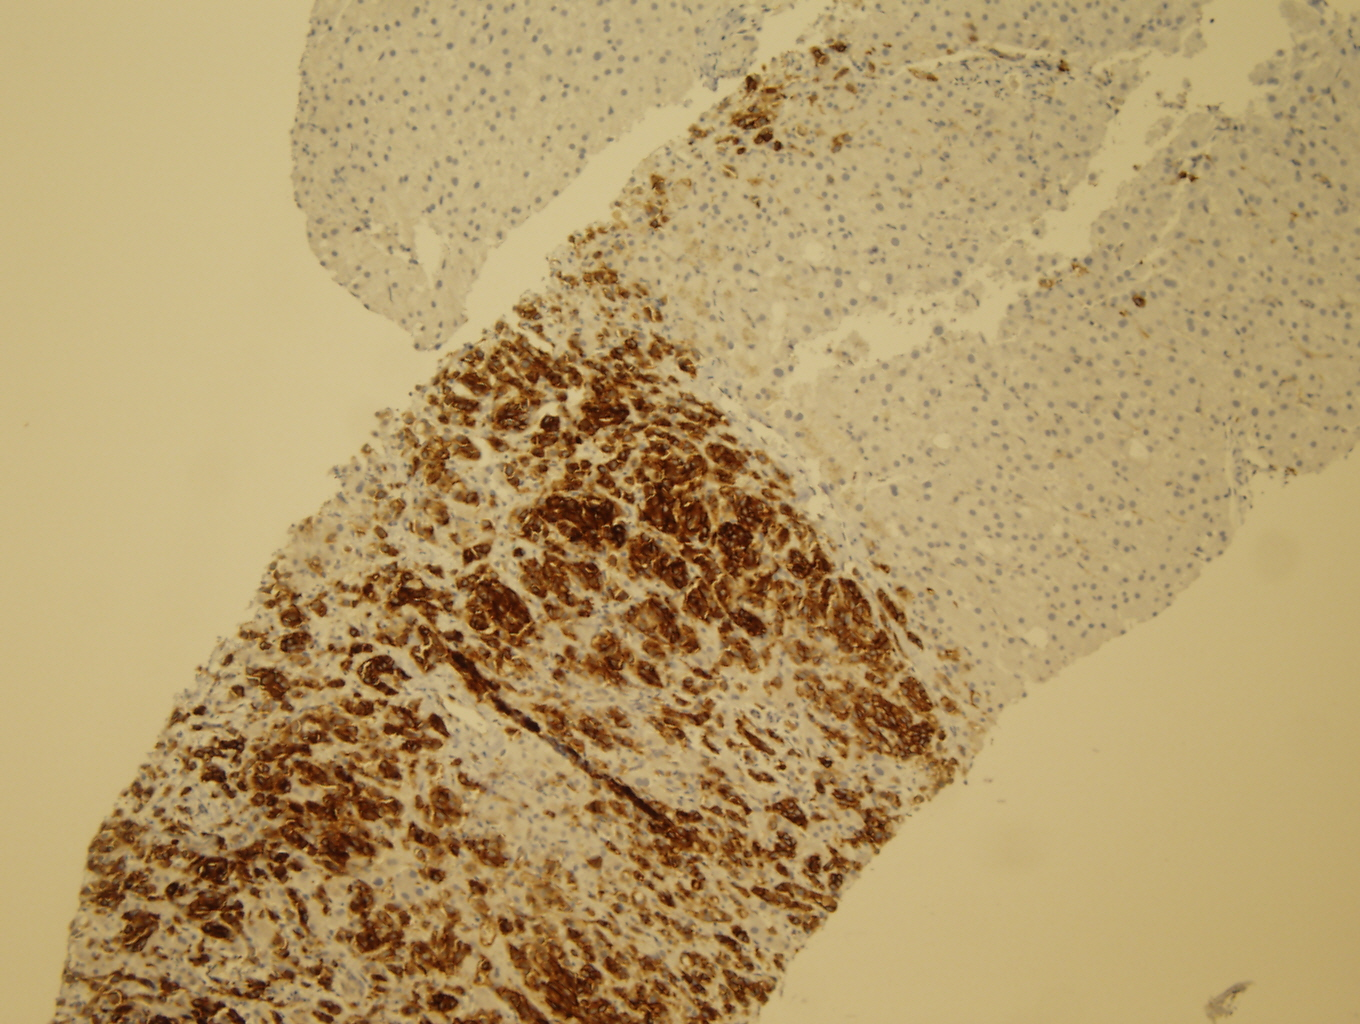 Microscopic image 4 - Liver core biopsy, CD117 (Click to enlarge)